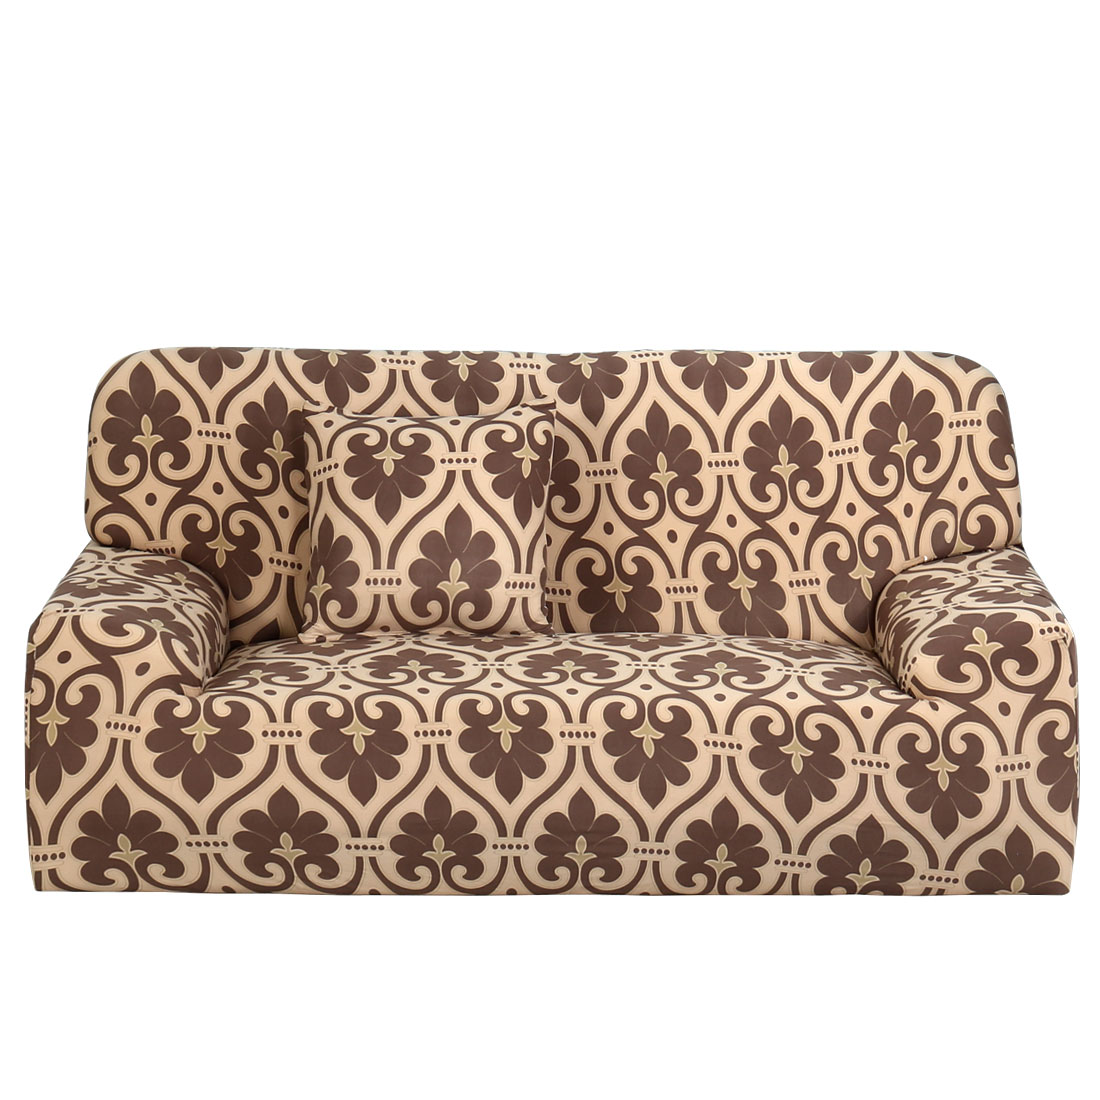 Stretch Fabric Home 1/2/3 Seats Cover Sofa Cover Loveseat Slipcovers